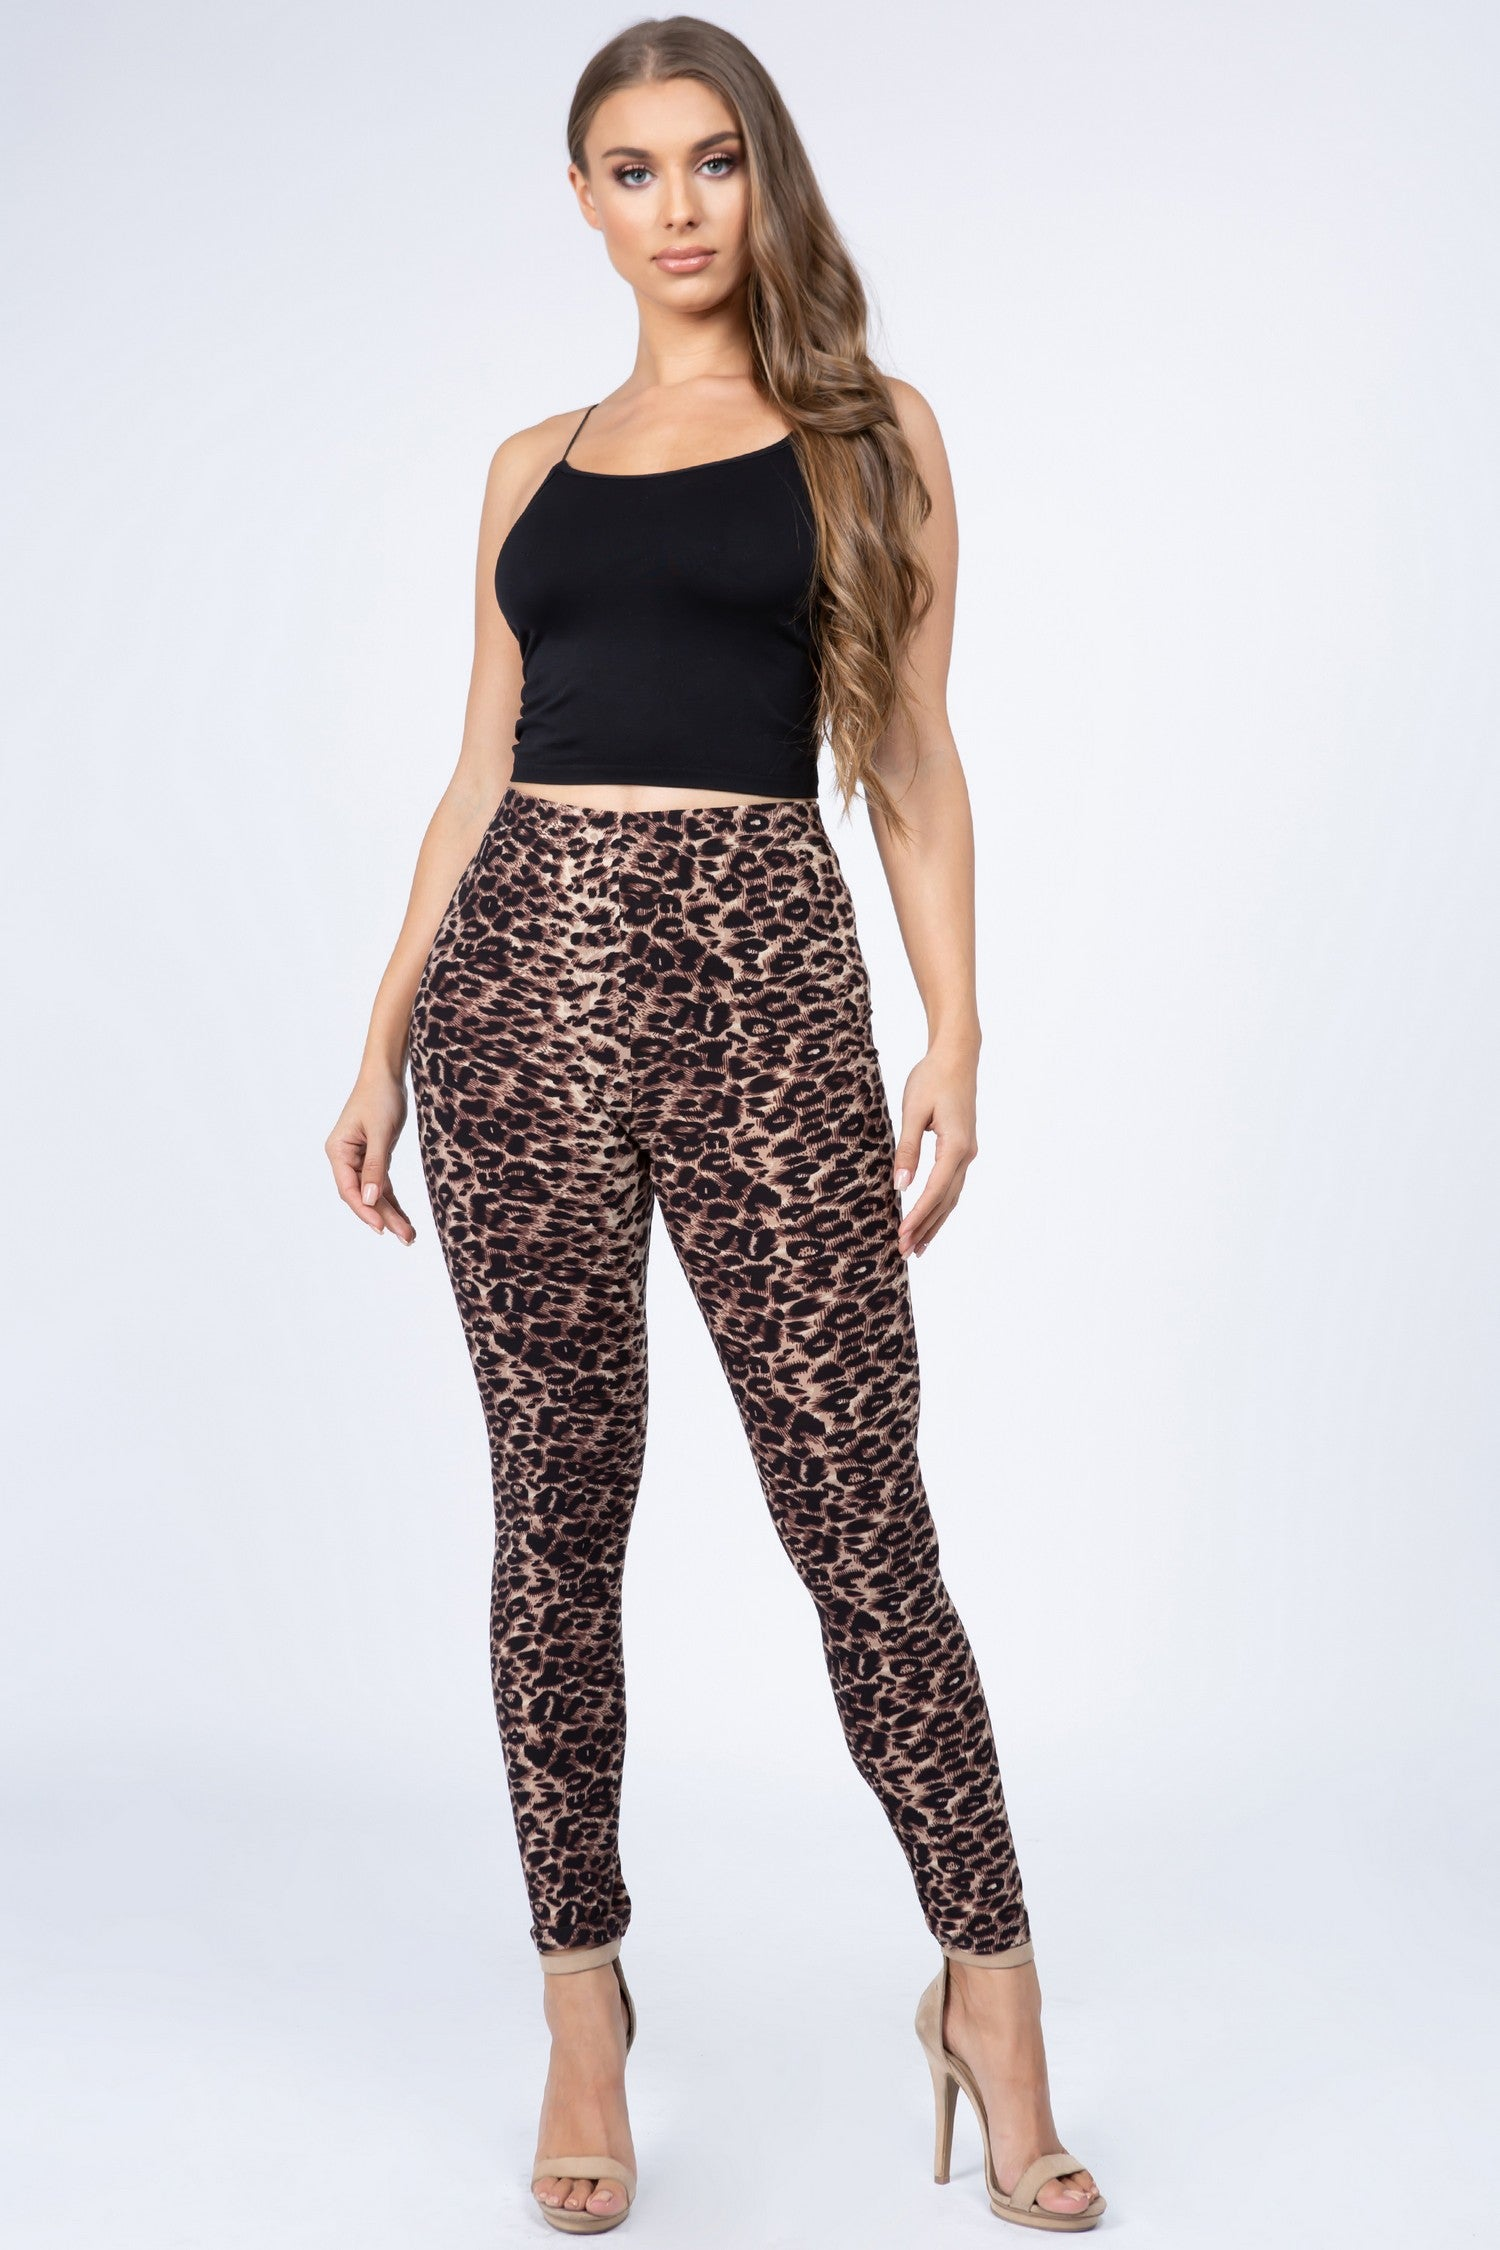 Missy Cheetah Leggings